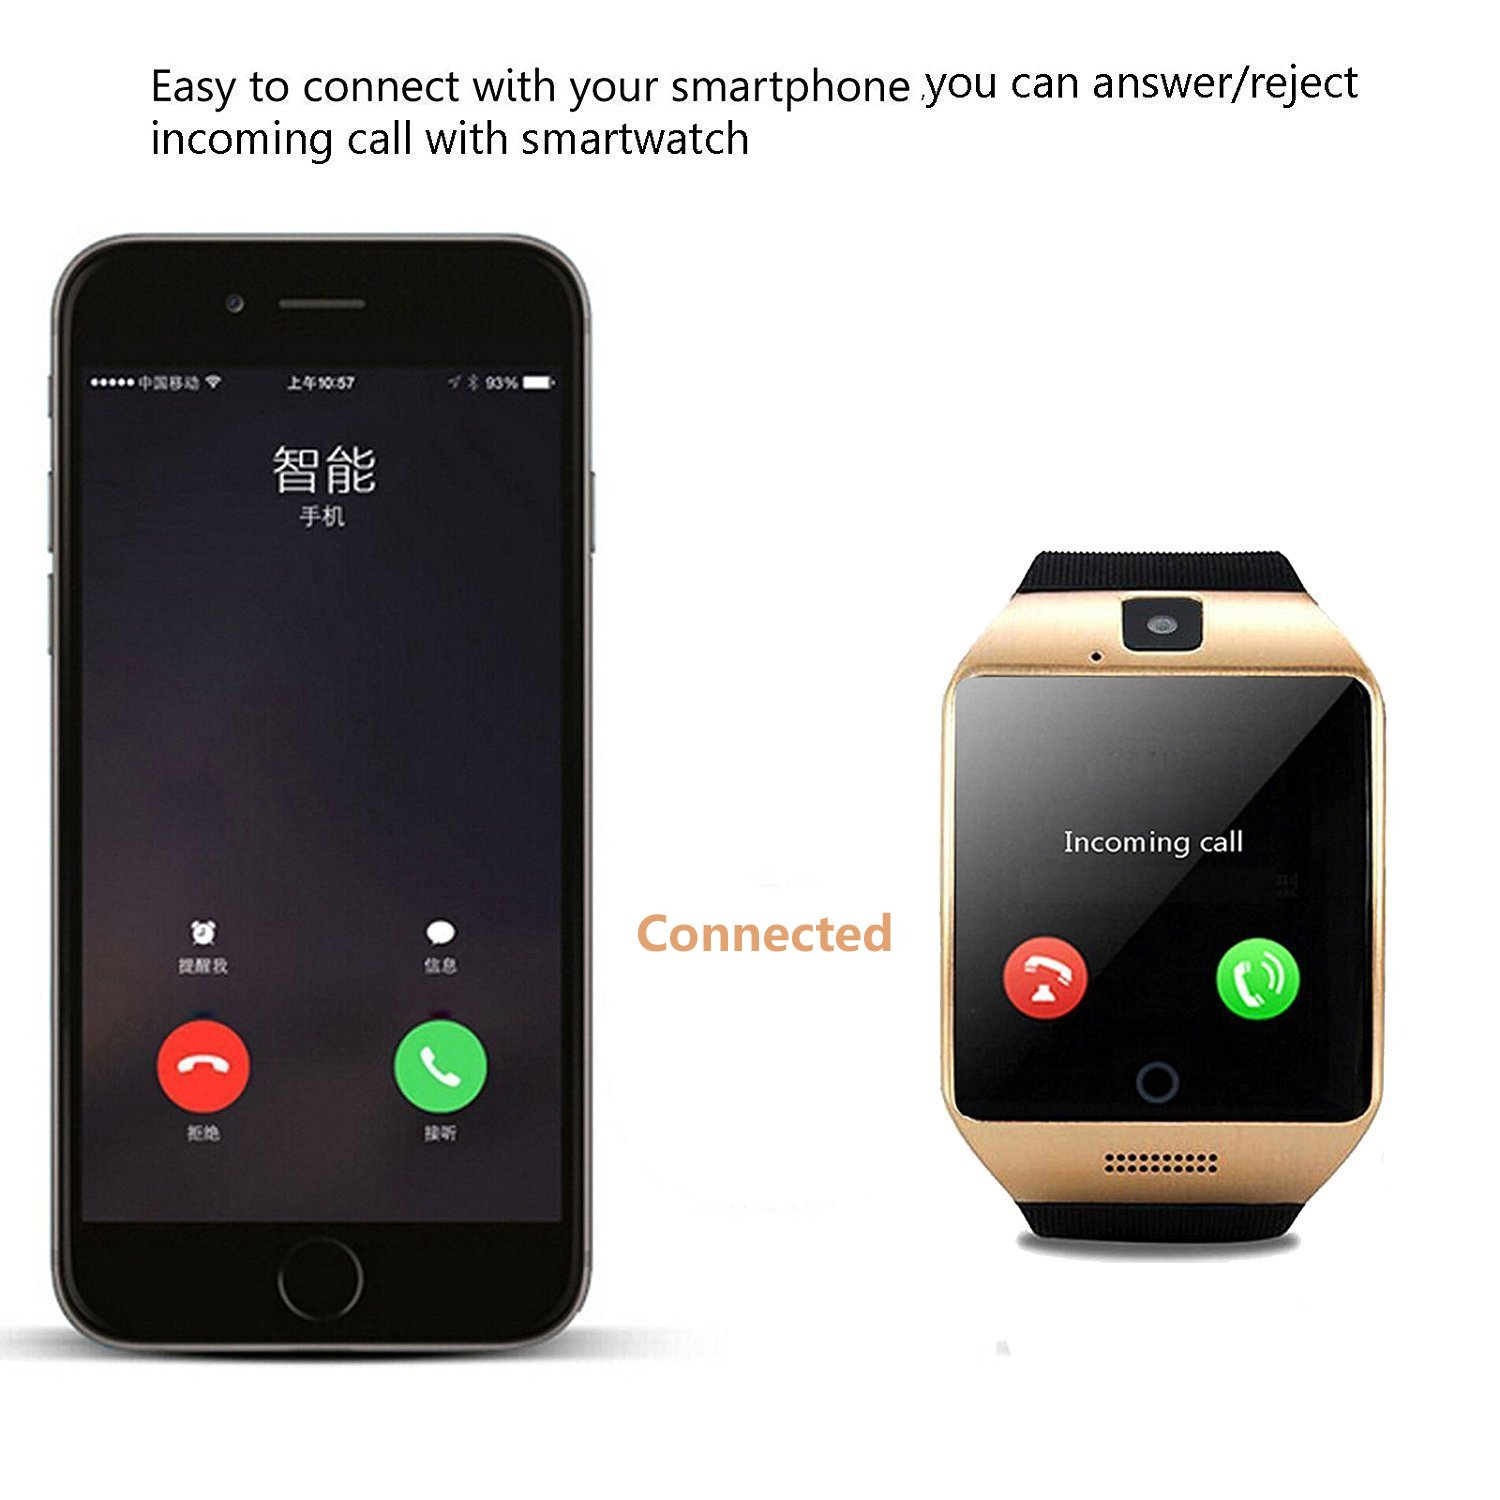 Amazon.com: Agkey Smartwatch Unlocked Watch Cell Phone Bluetooth Smart Watch with Camera Handsfree Call for Samsung LG HTC Motorola Huawei BLU Android ...